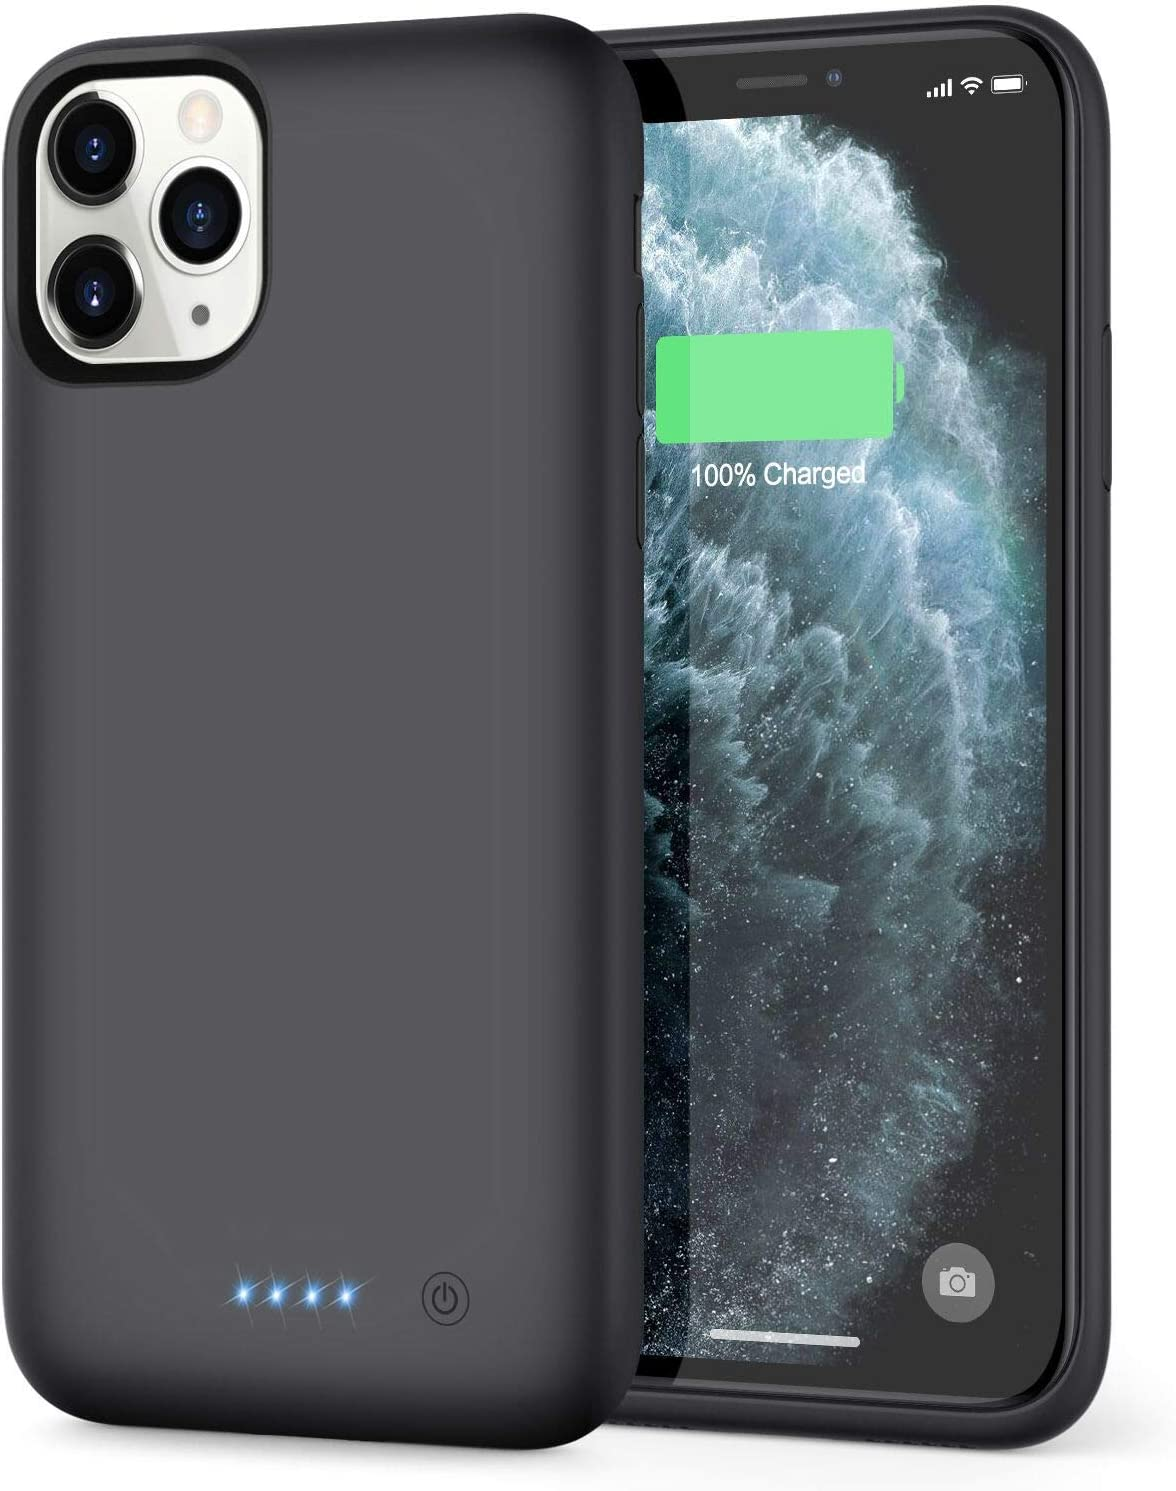 Xooparc Battery case for iPhone 11 pro max [7800mah] Upgraded Charging Case Protective Portable Charger Case Rechargeable Extended Battery Pack for Apple iPhone 11 pro max (6.5') Backup Power Bank